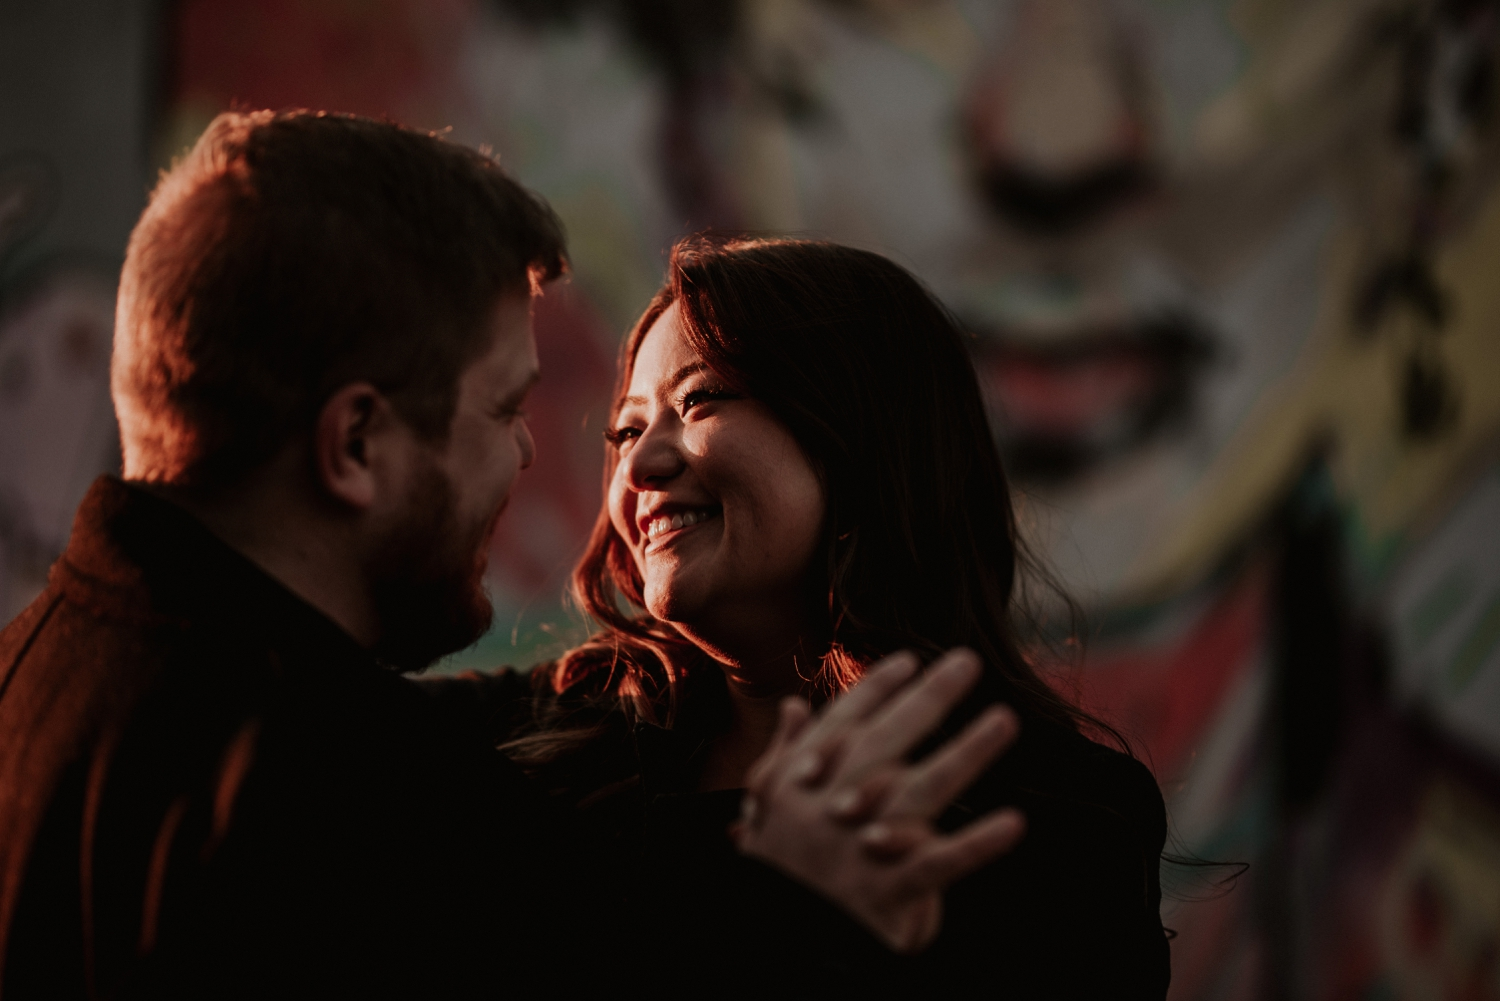 krog_tunnel_engagement_session_atlanta_wedding_photographers45.jpg